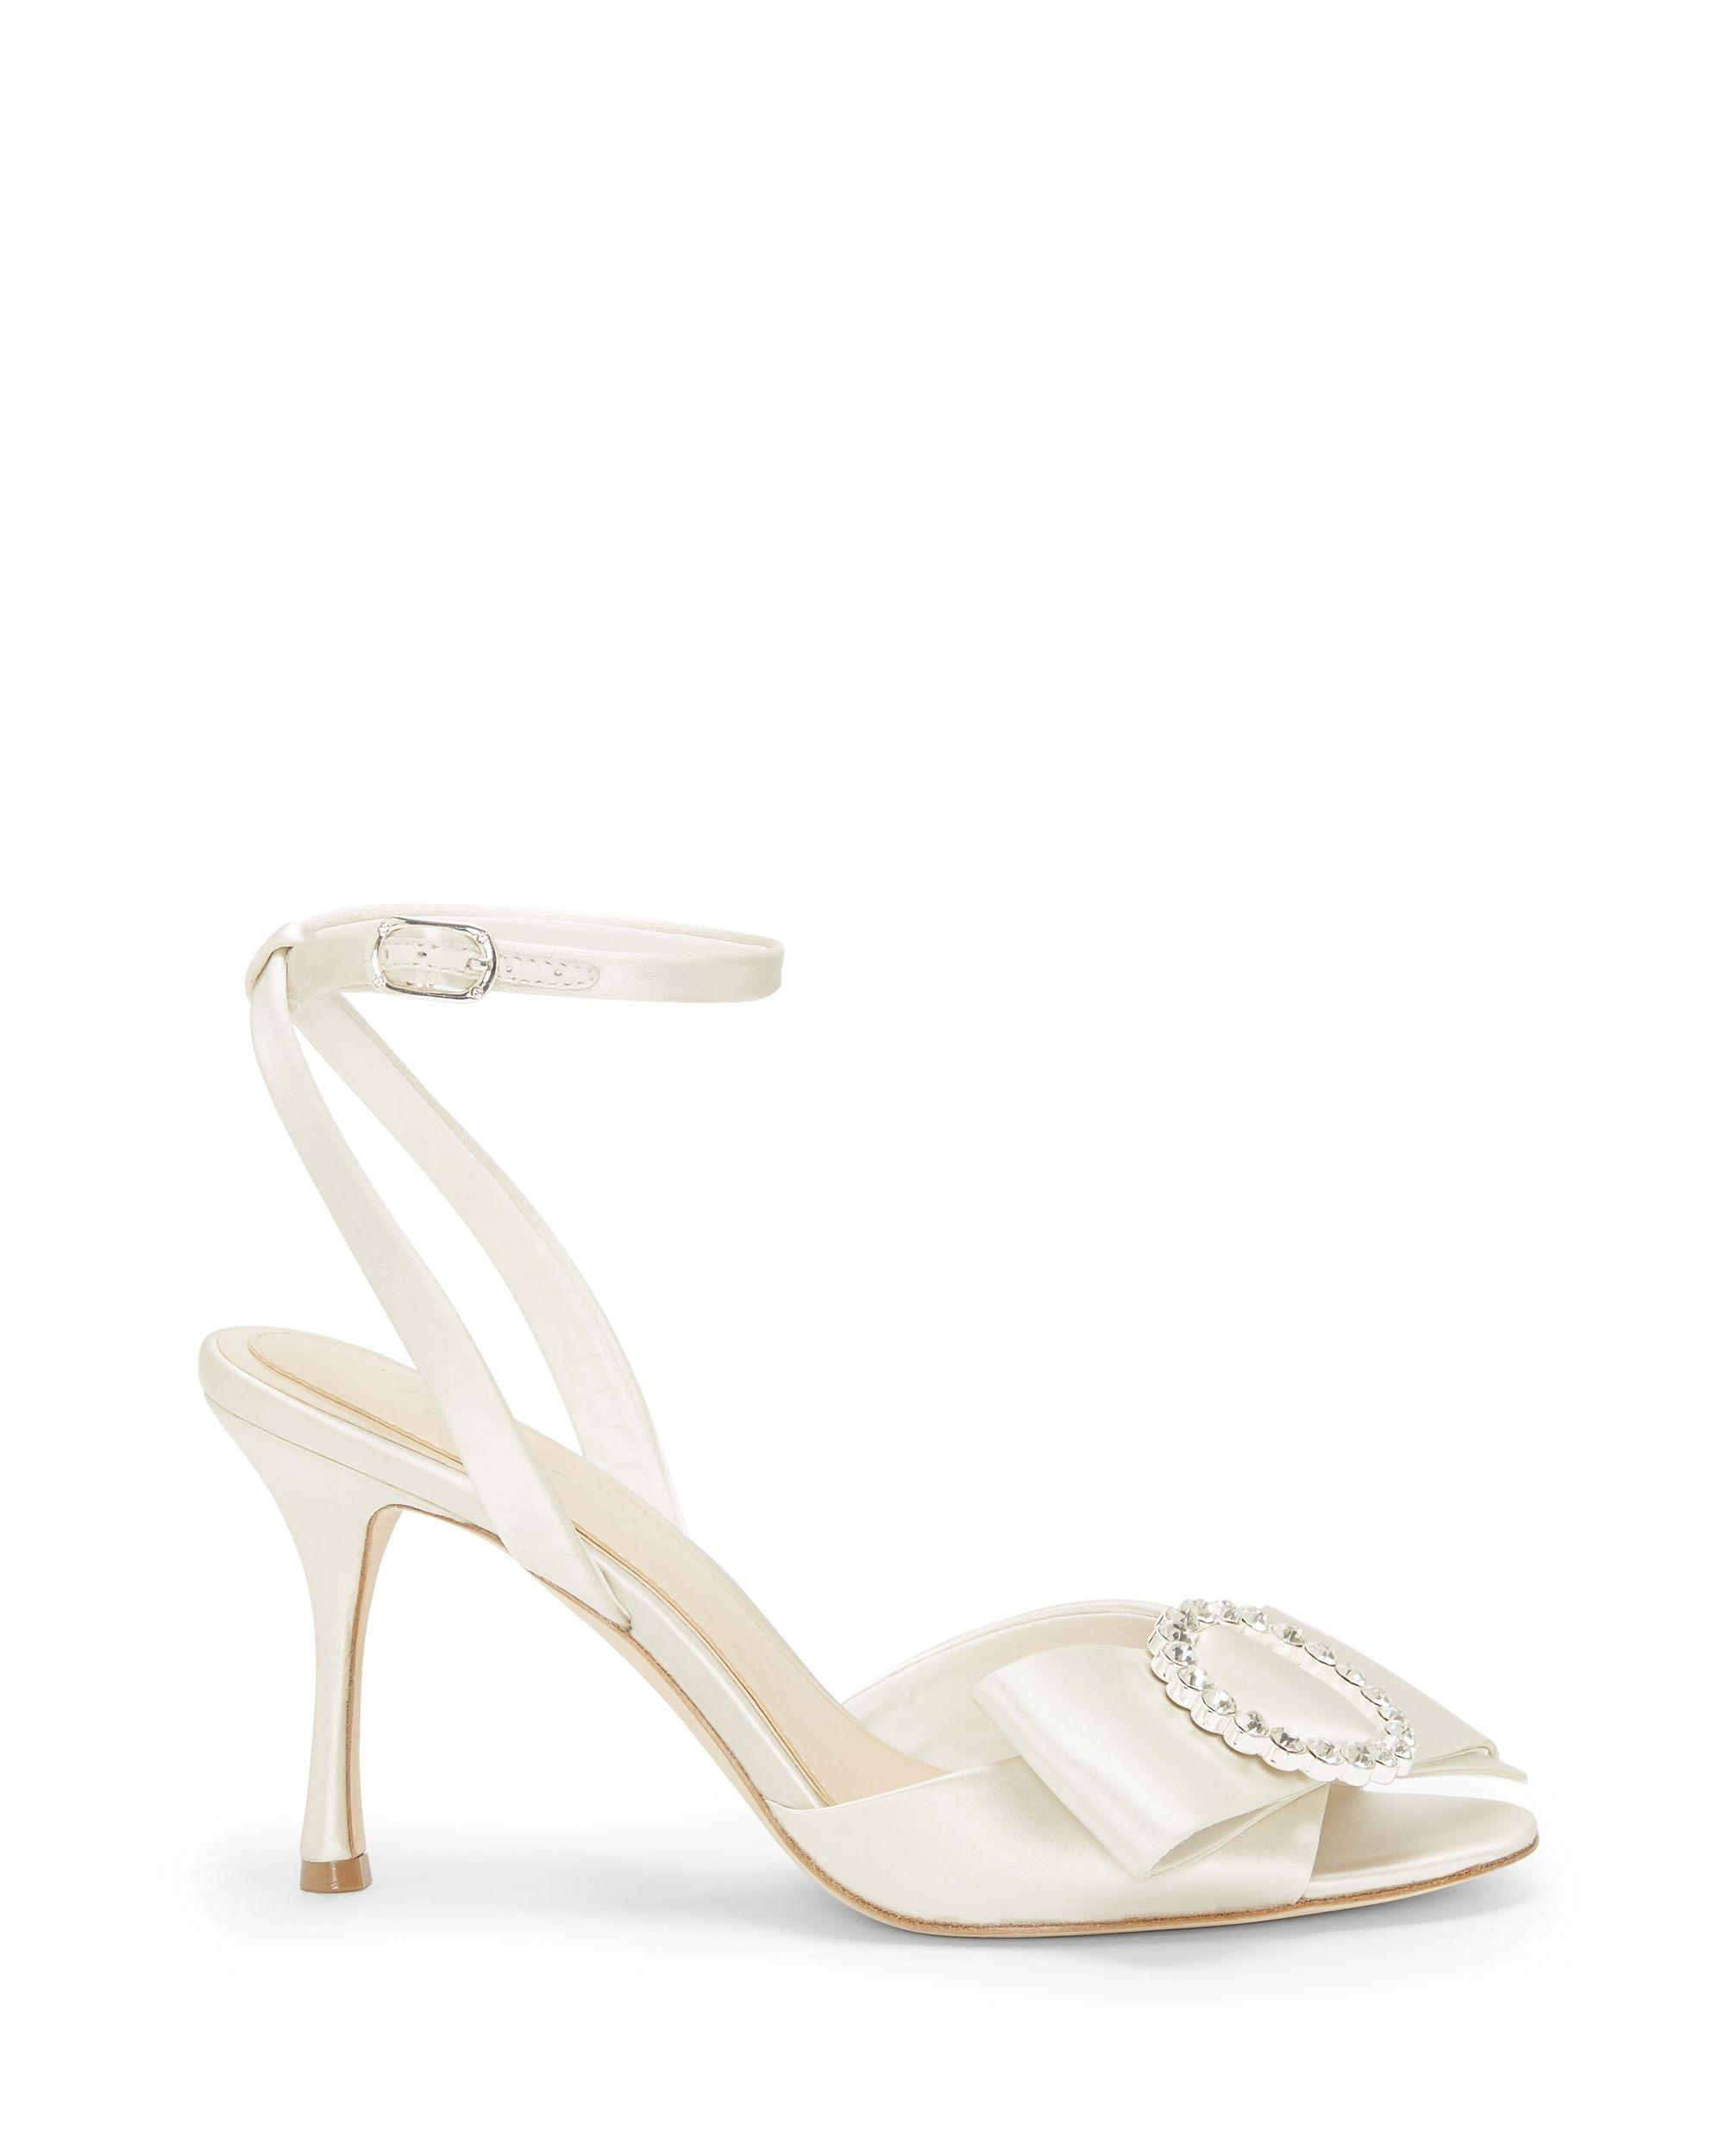 f82403392db7 Lyst - Vince Camuto Imagine Belia – Bow-strap Sandal in White - Save 19%